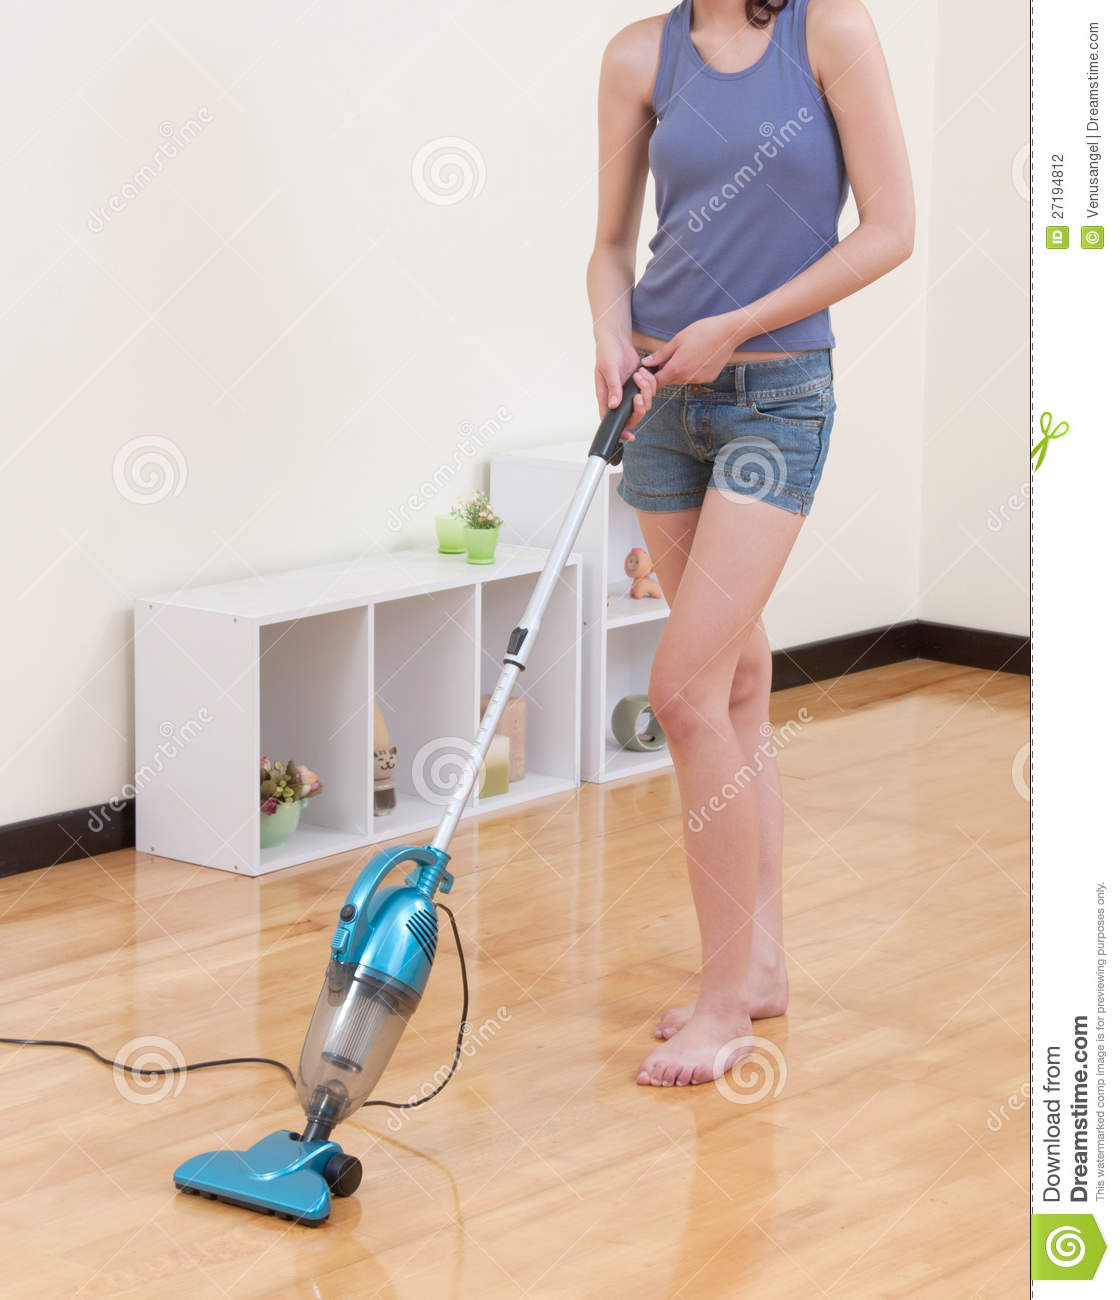 Woman Cleaning The Floor With Vacuum Cleaner Stock Photography  Image 27194812